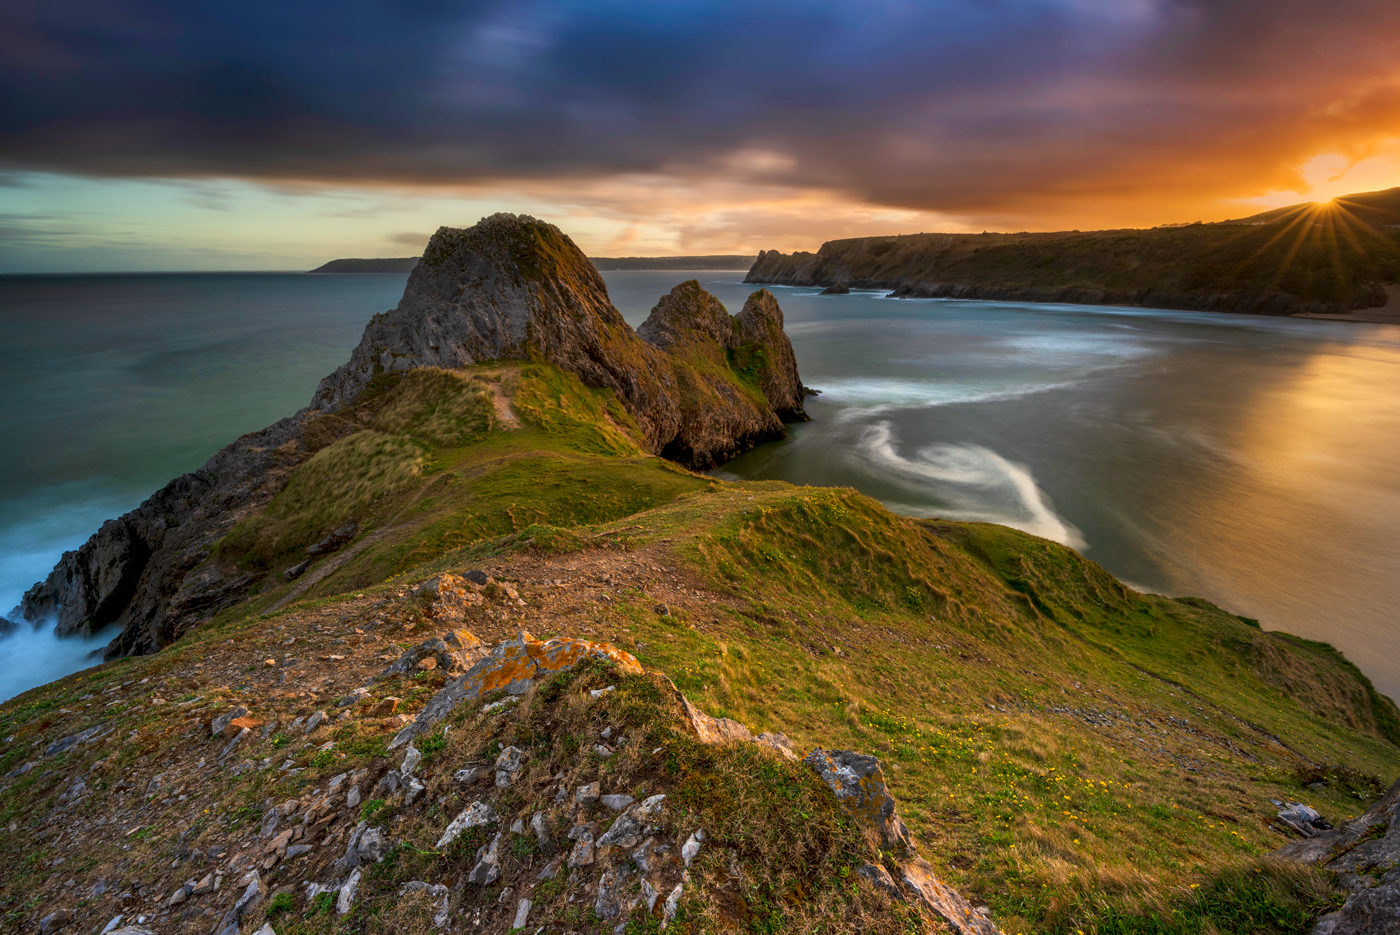 Three Cliffs Bay Gower Peninsula Wales landscape photography prints for sale